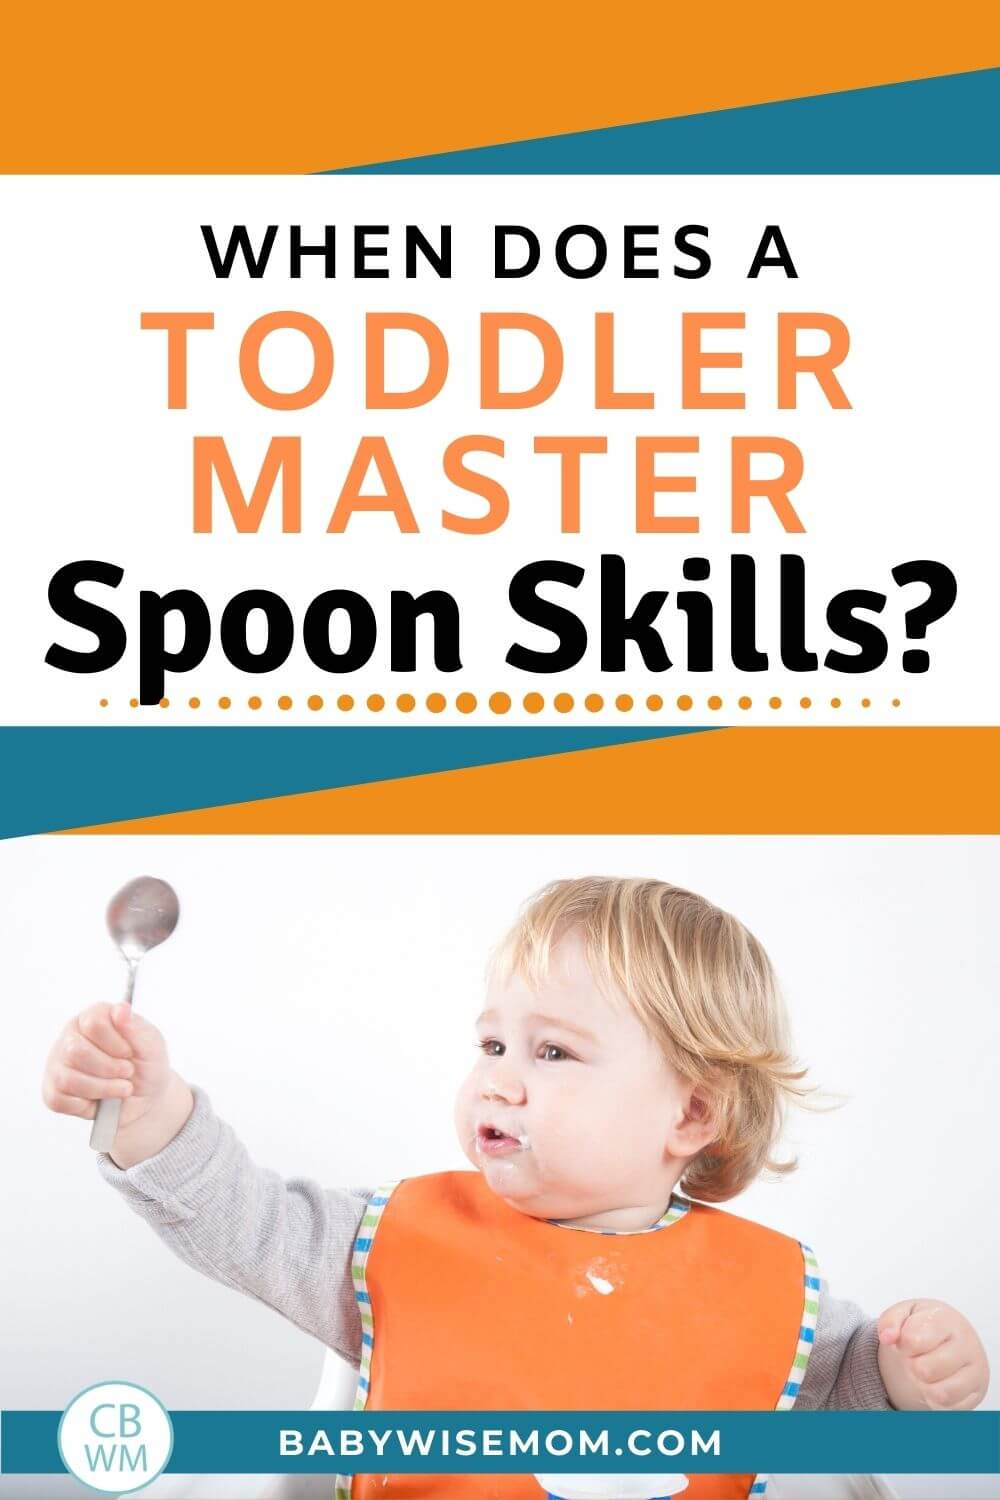 When does a toddle master spoon skills?